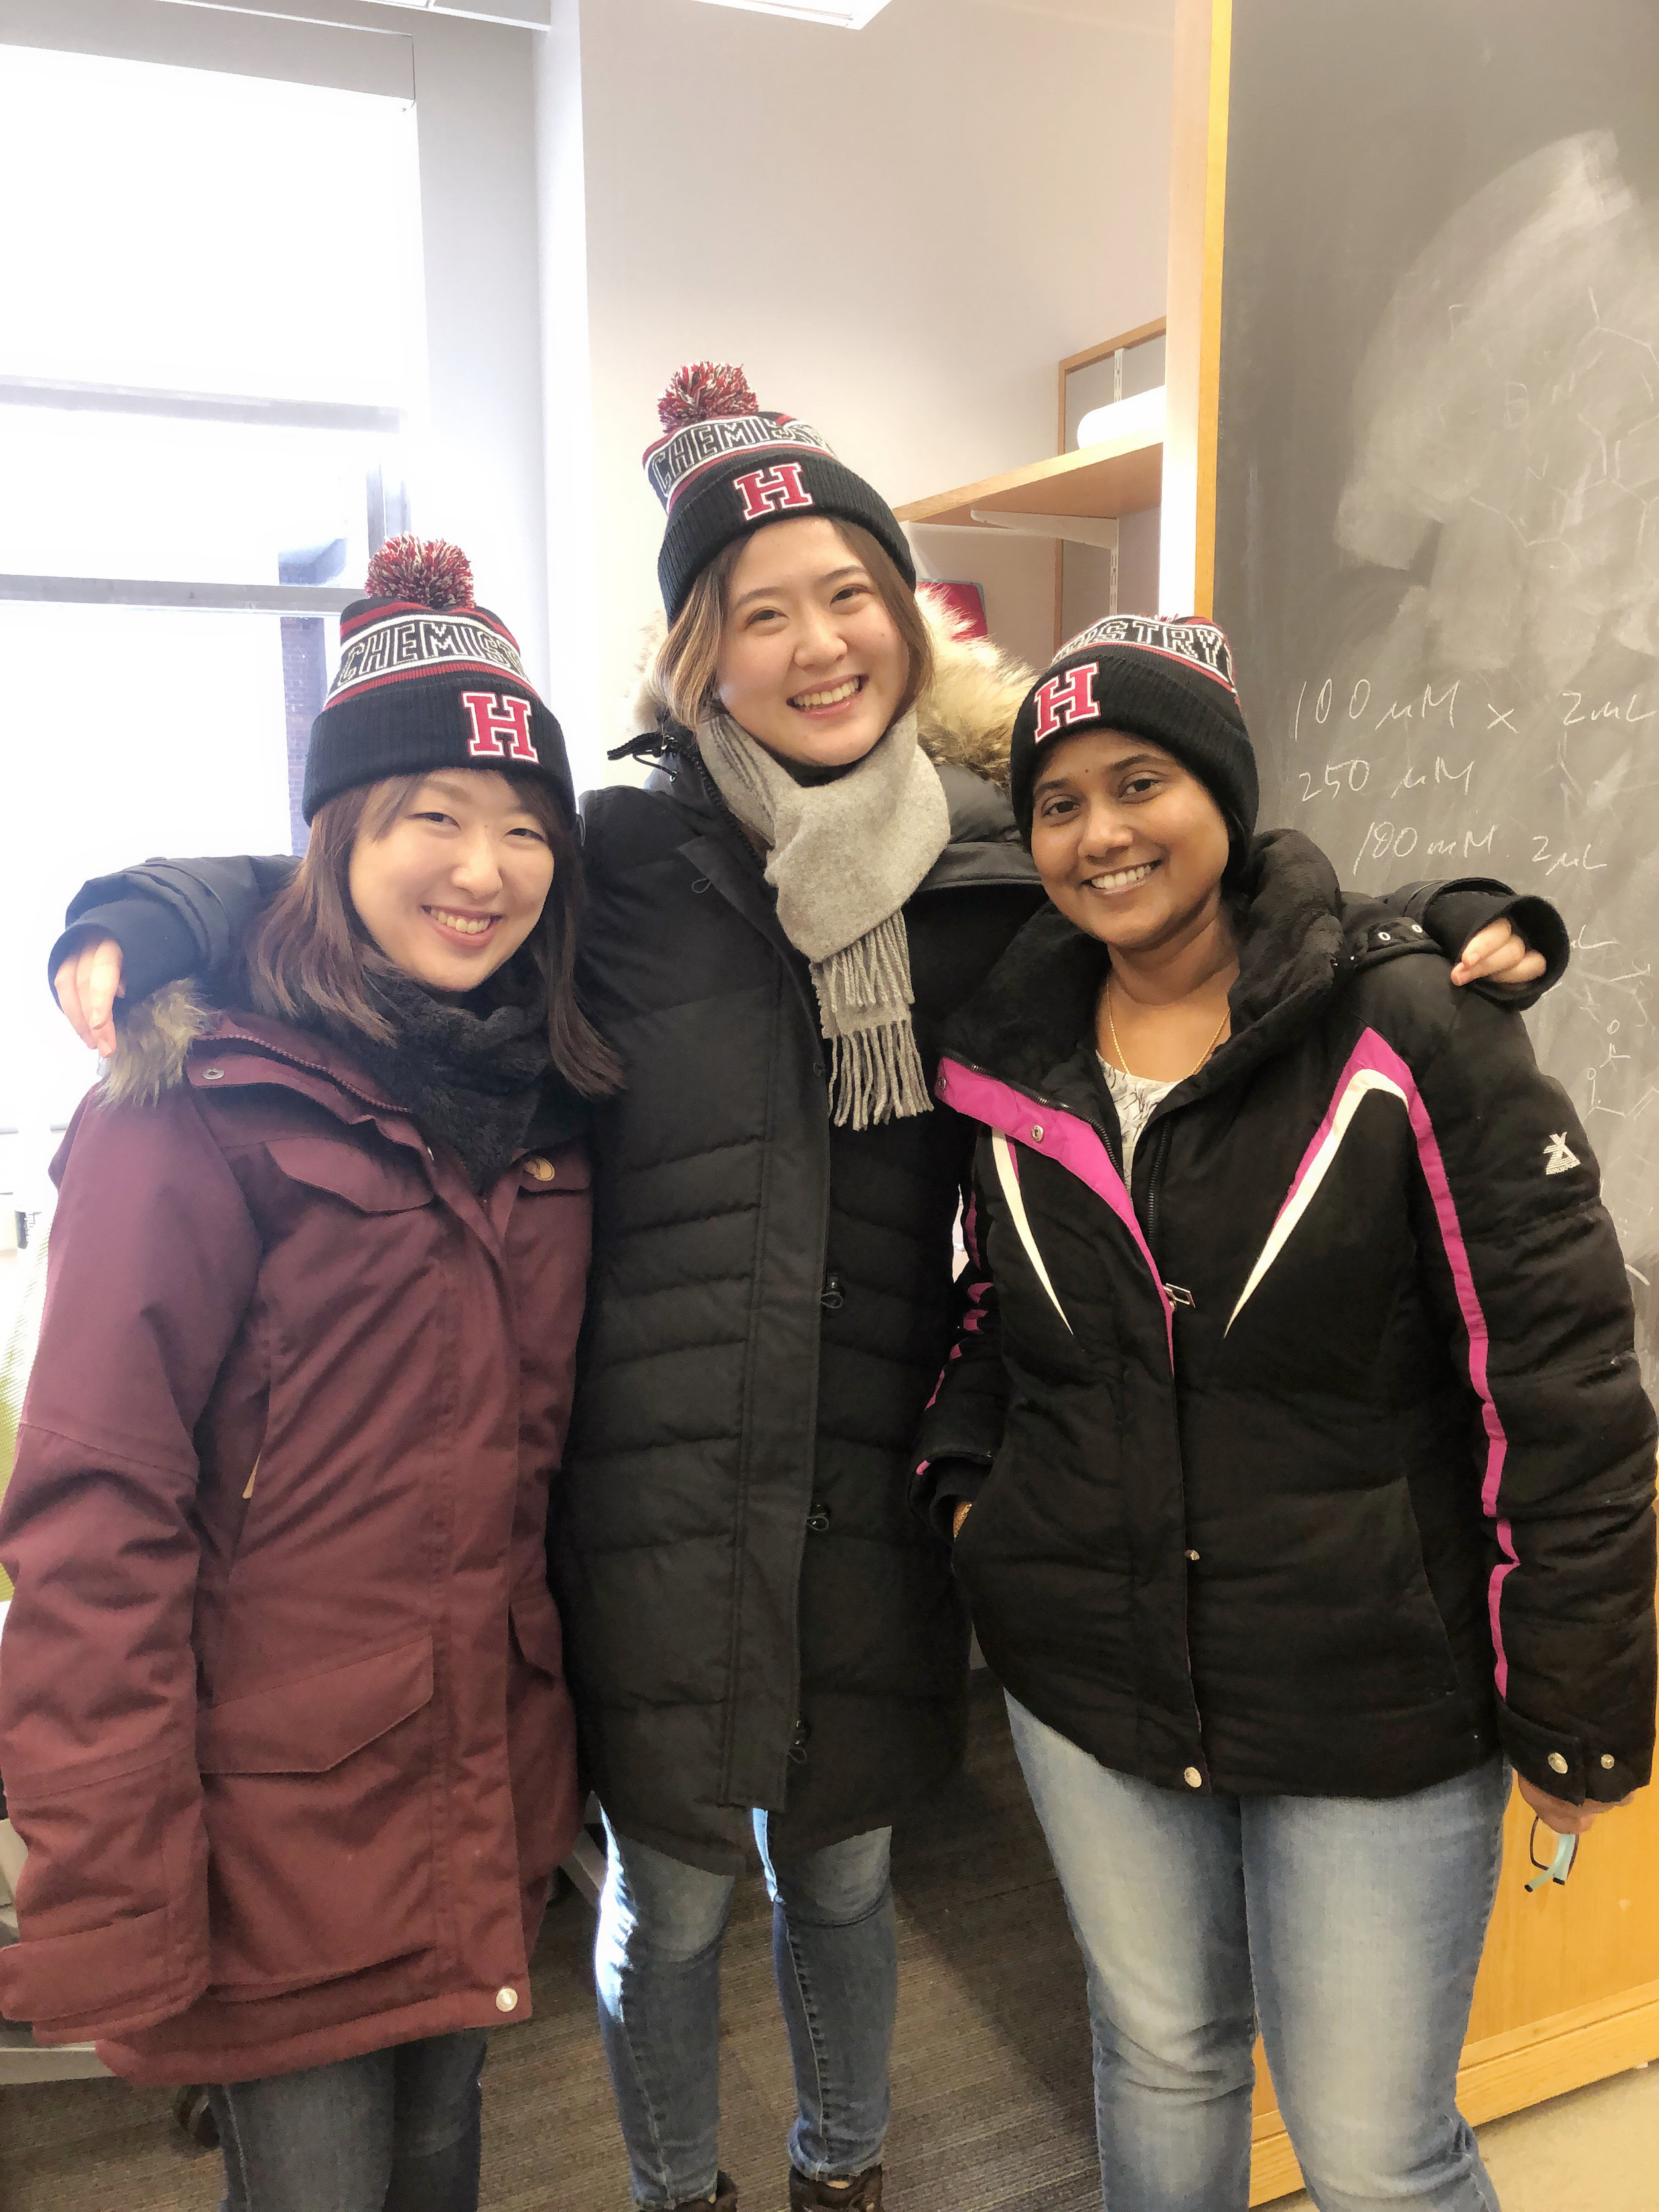 Group girls with our new Harvard beanies!